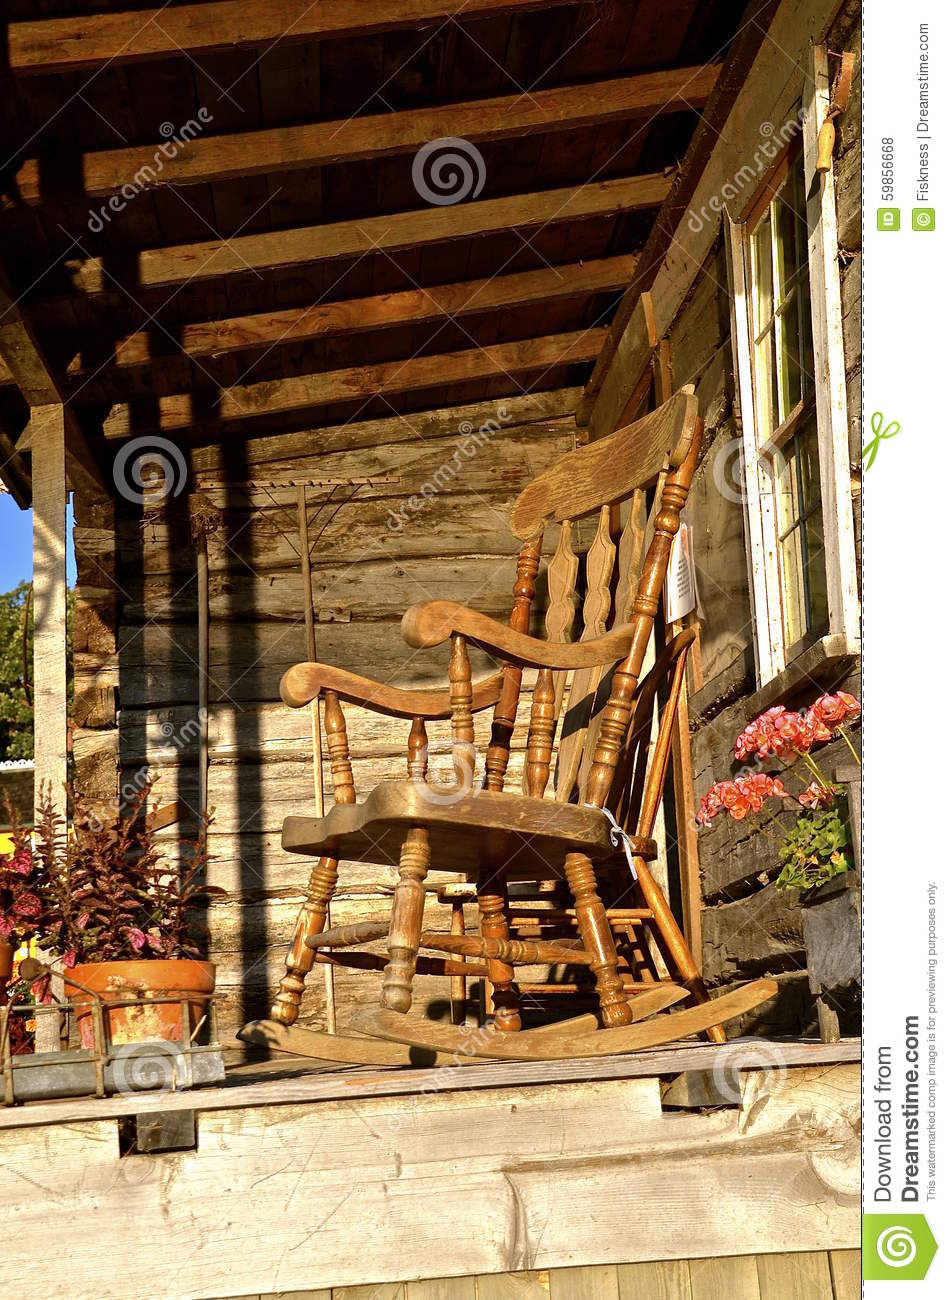 Download Rocking Chair On Cabin Entryway Stock Photo - Image of primitive rest 59856668 & Rocking Chair On Cabin Entryway Stock Photo - Image of primitive ...